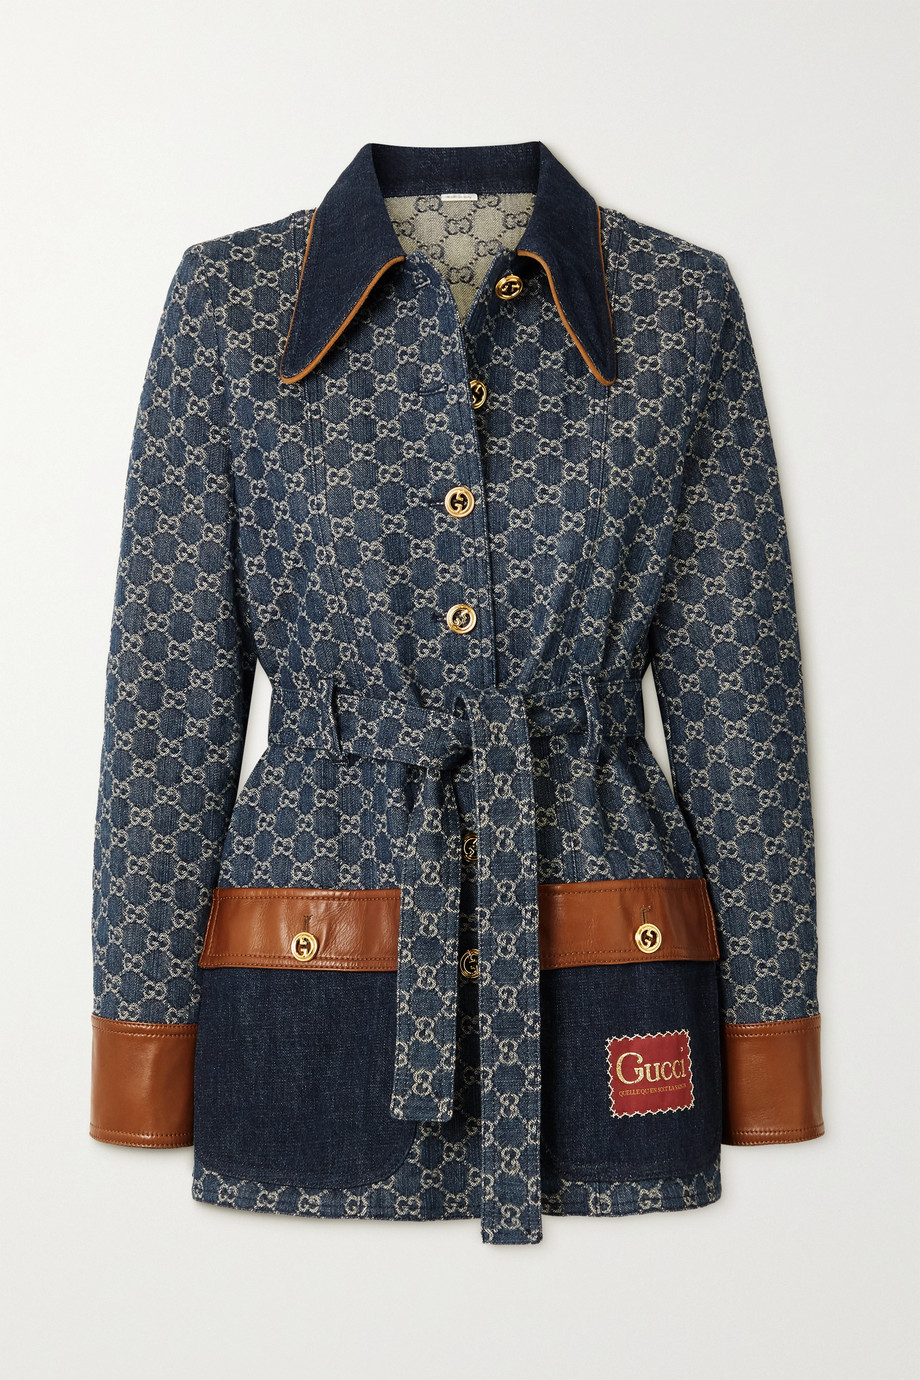 GUCCI + NET SUSTAIN leather-trimmed organic denim-jacquard jacket